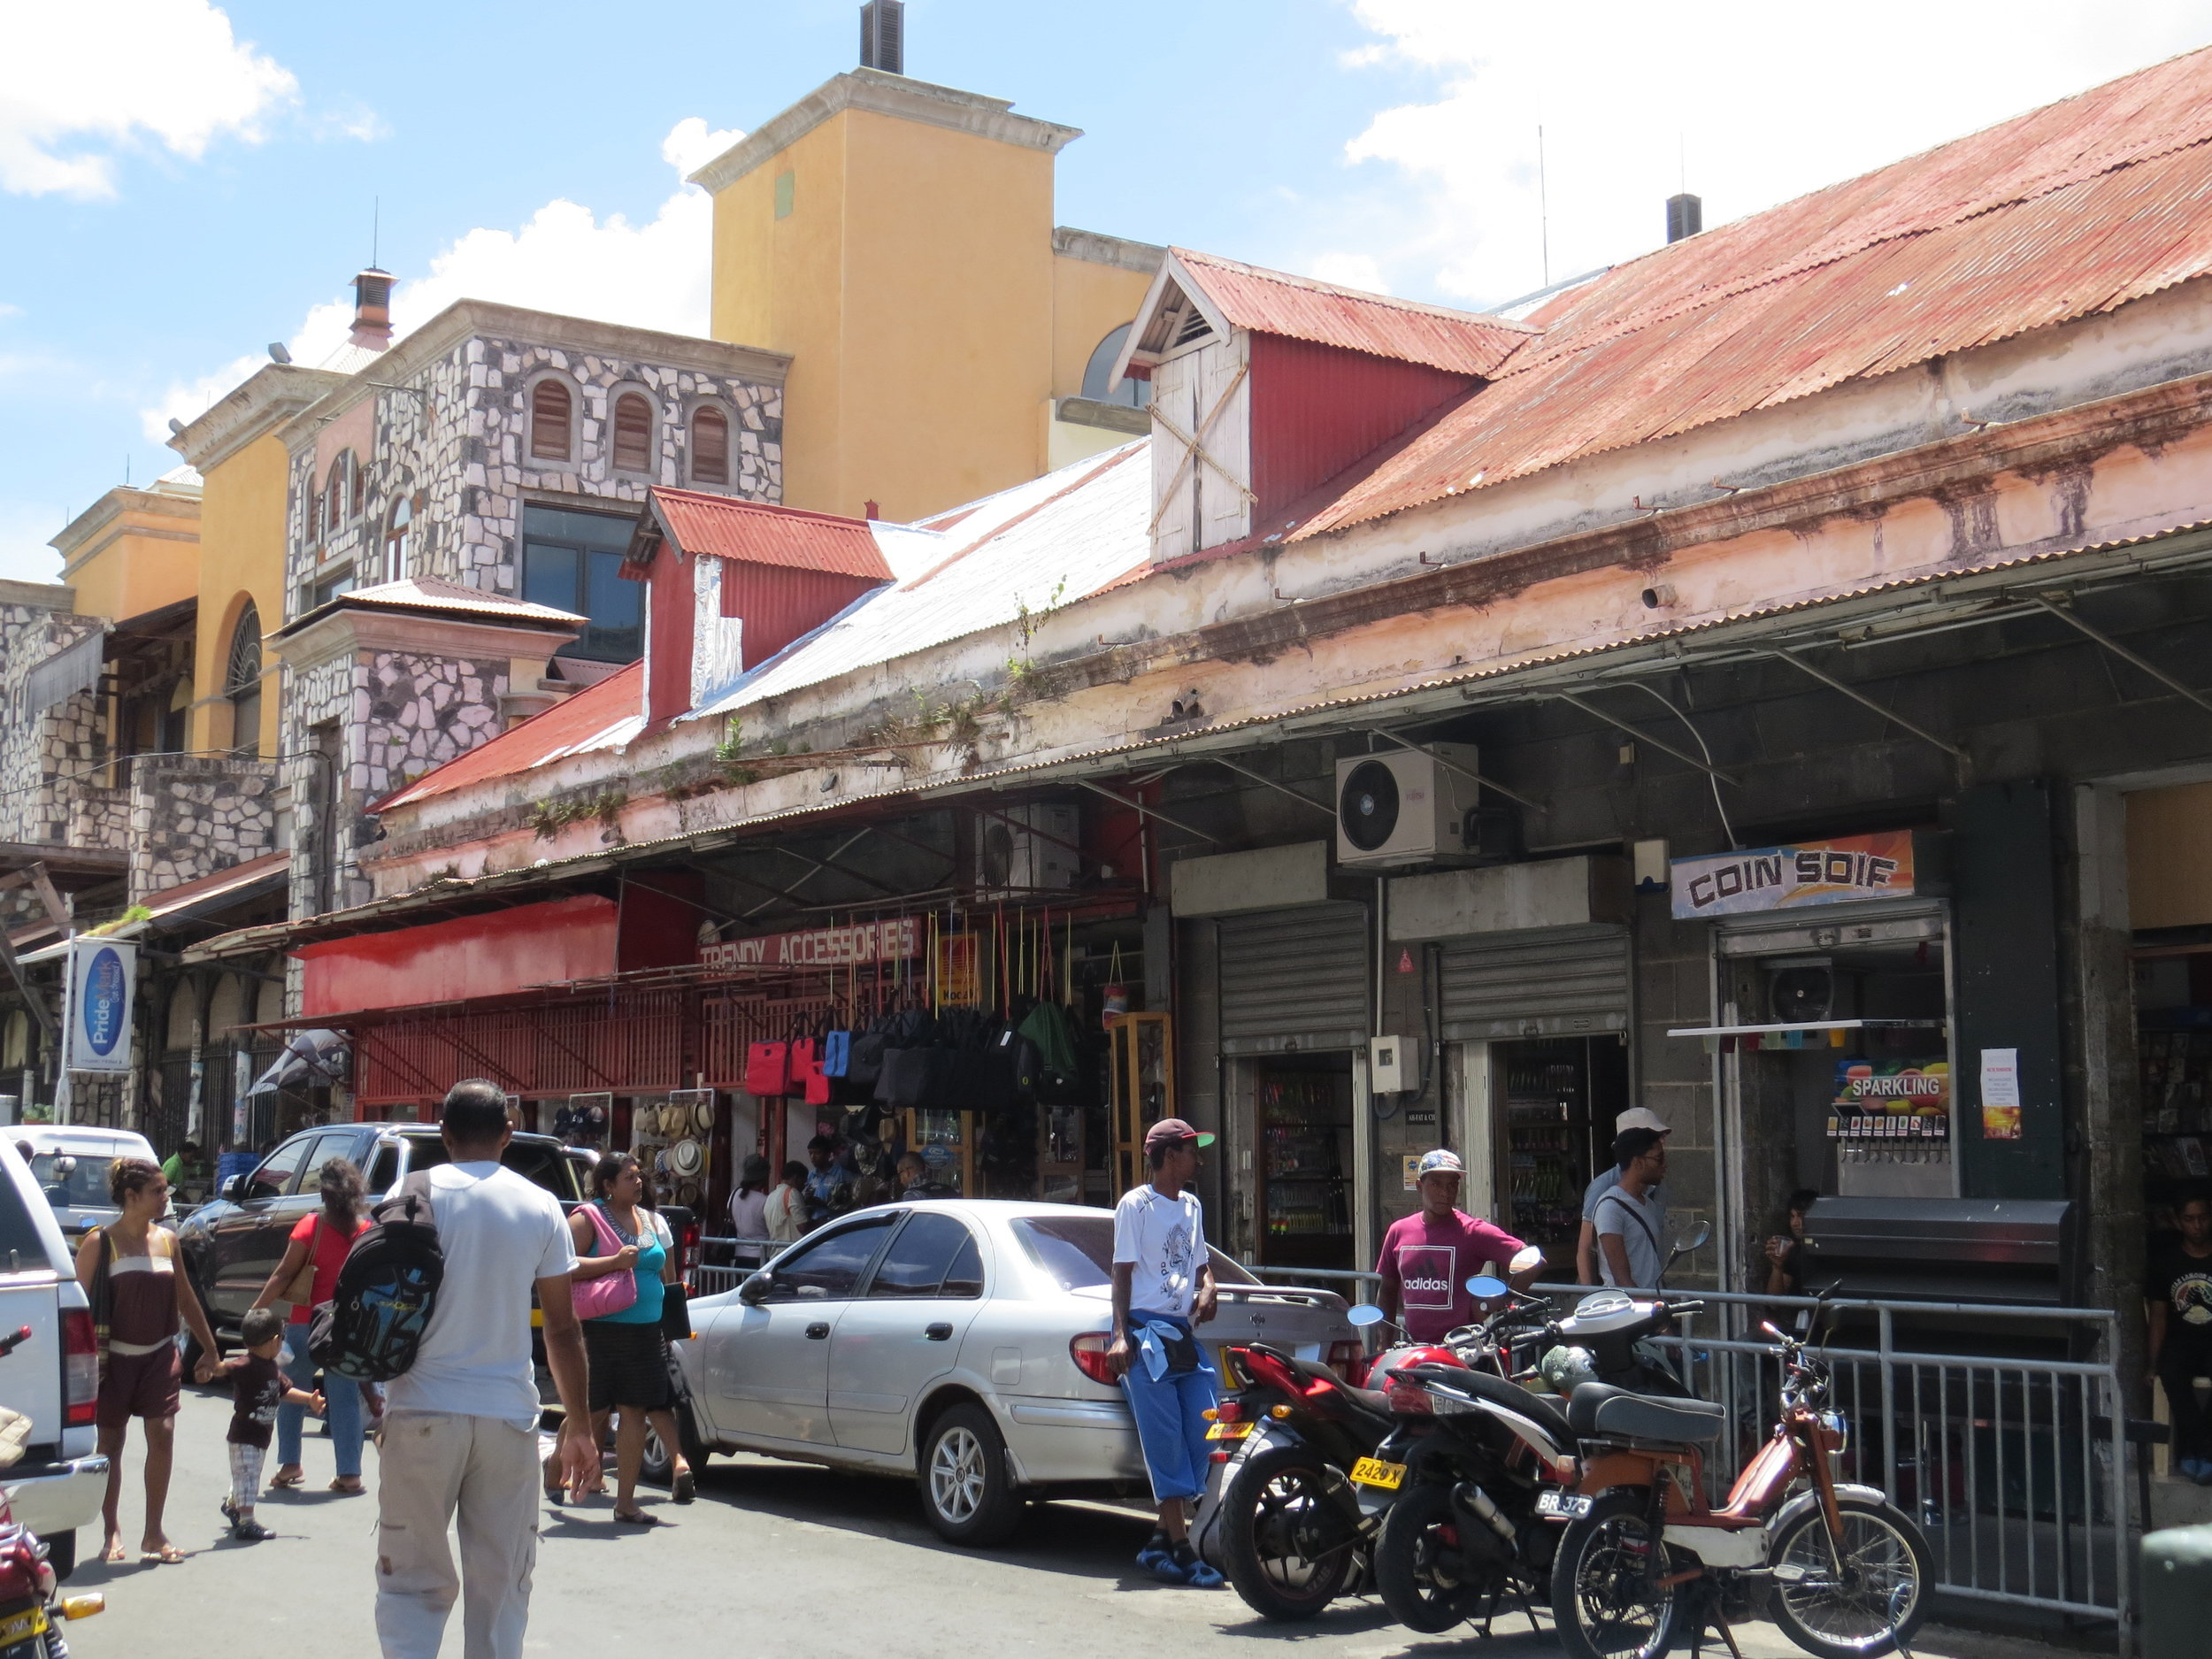 The streets are congested and pedestrian traffic overflows the narrow sidewalks which are crammed with vendor's wares.